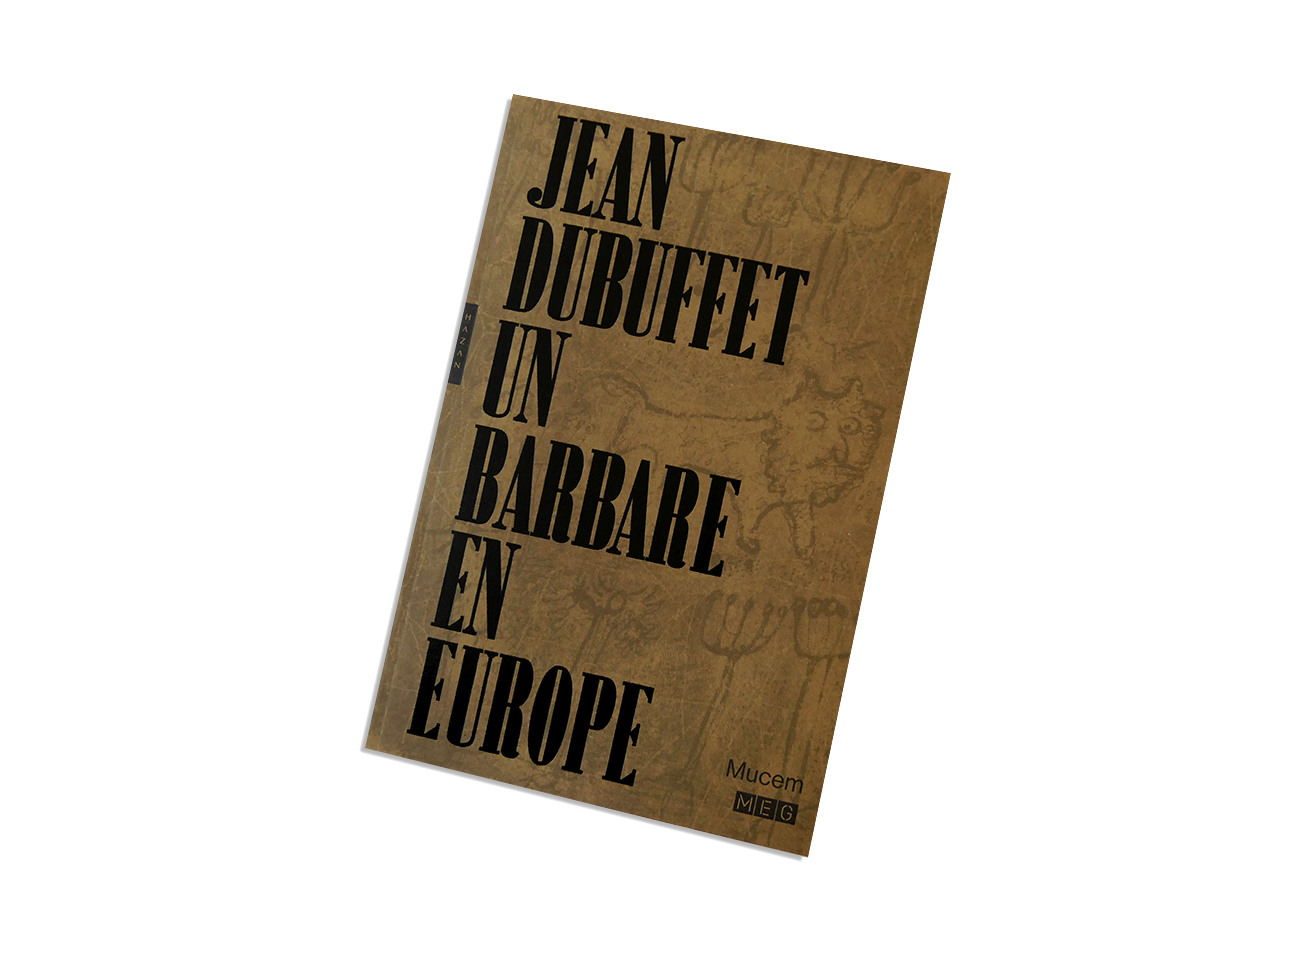 Catalogue d'exposition Jean Dubuffet, un barbare en Europe, Mucem